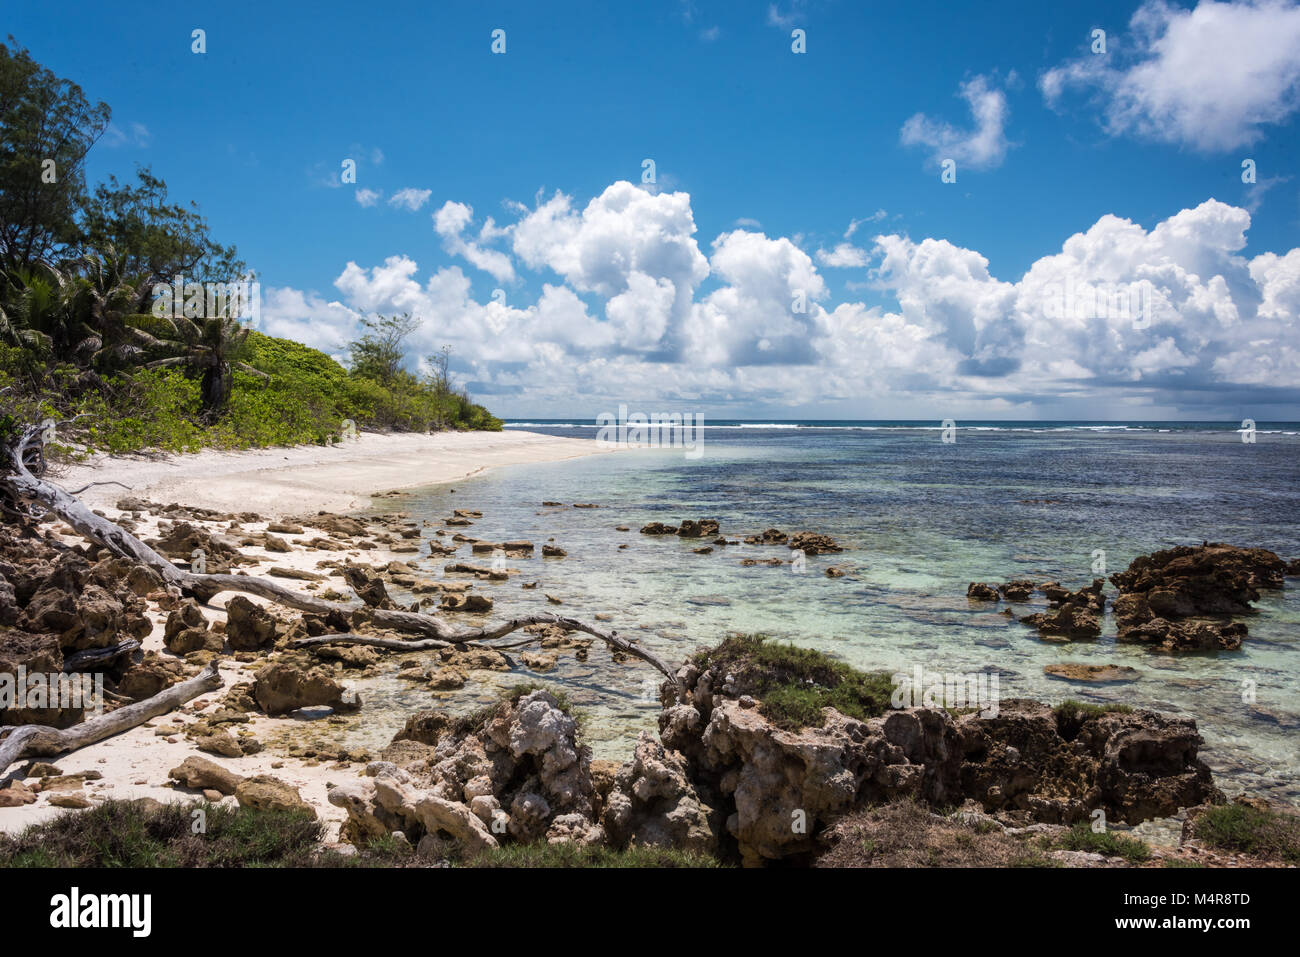 Coastline, Denis Private Island, Seychelles - Stock Image